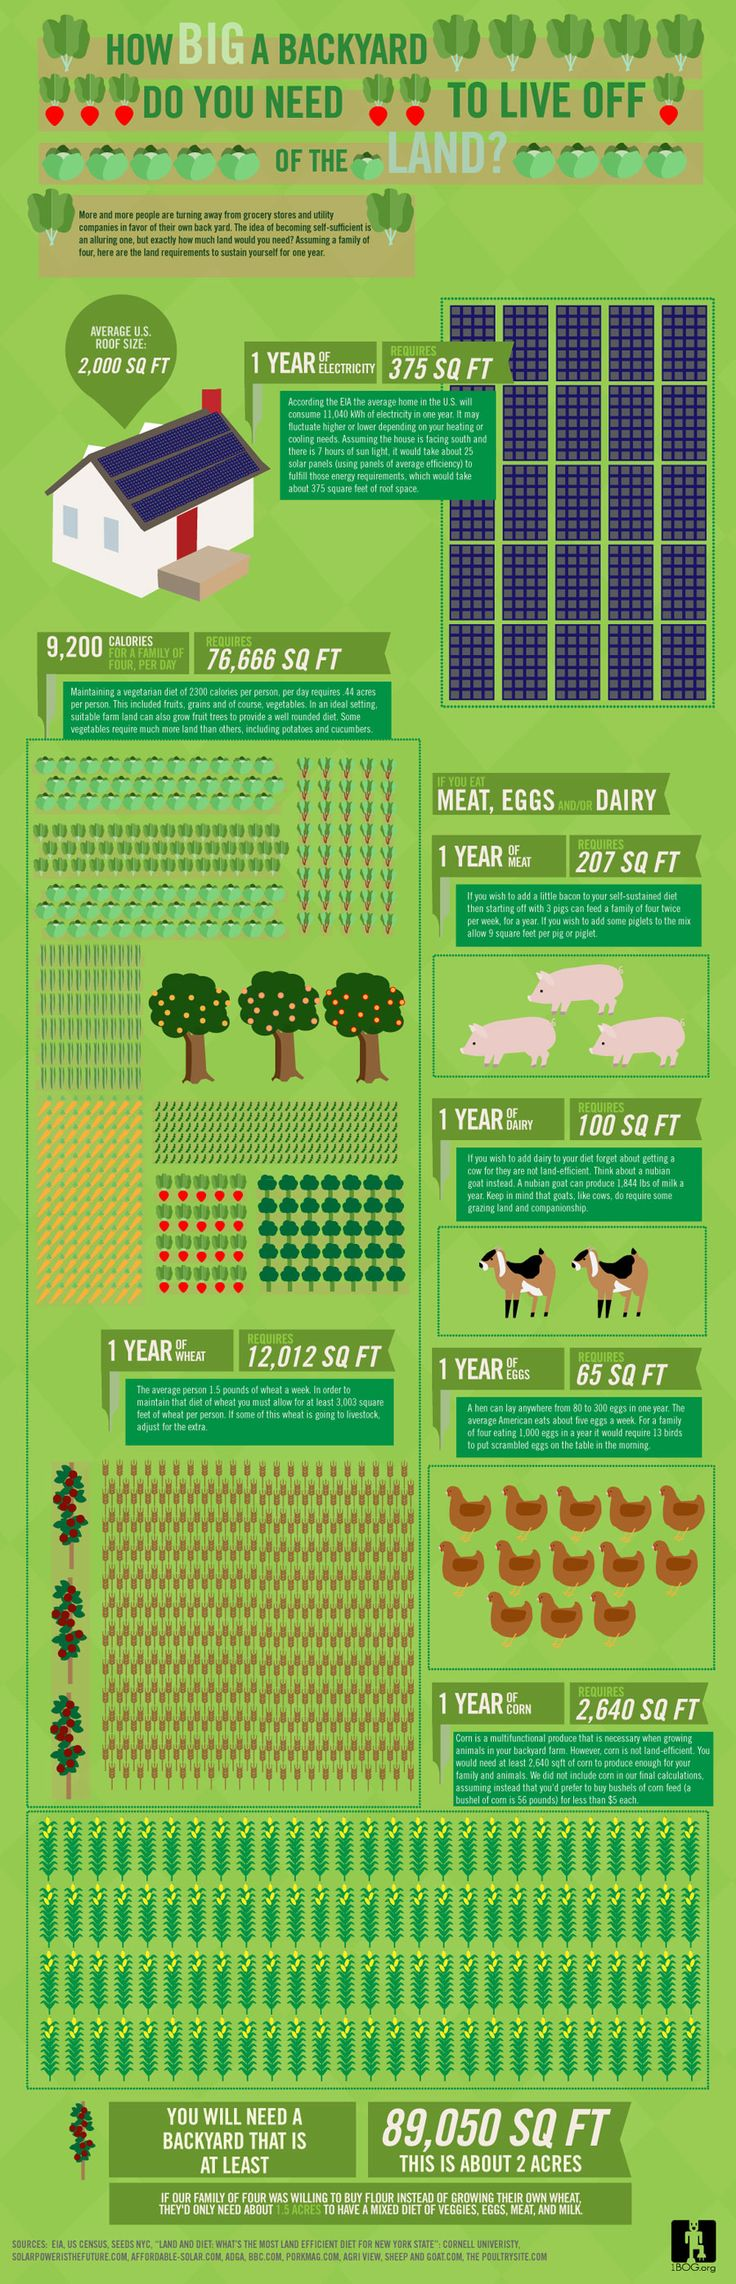 Infographic: Backyard Gardening and Food Supply for One Year | Renew Resources